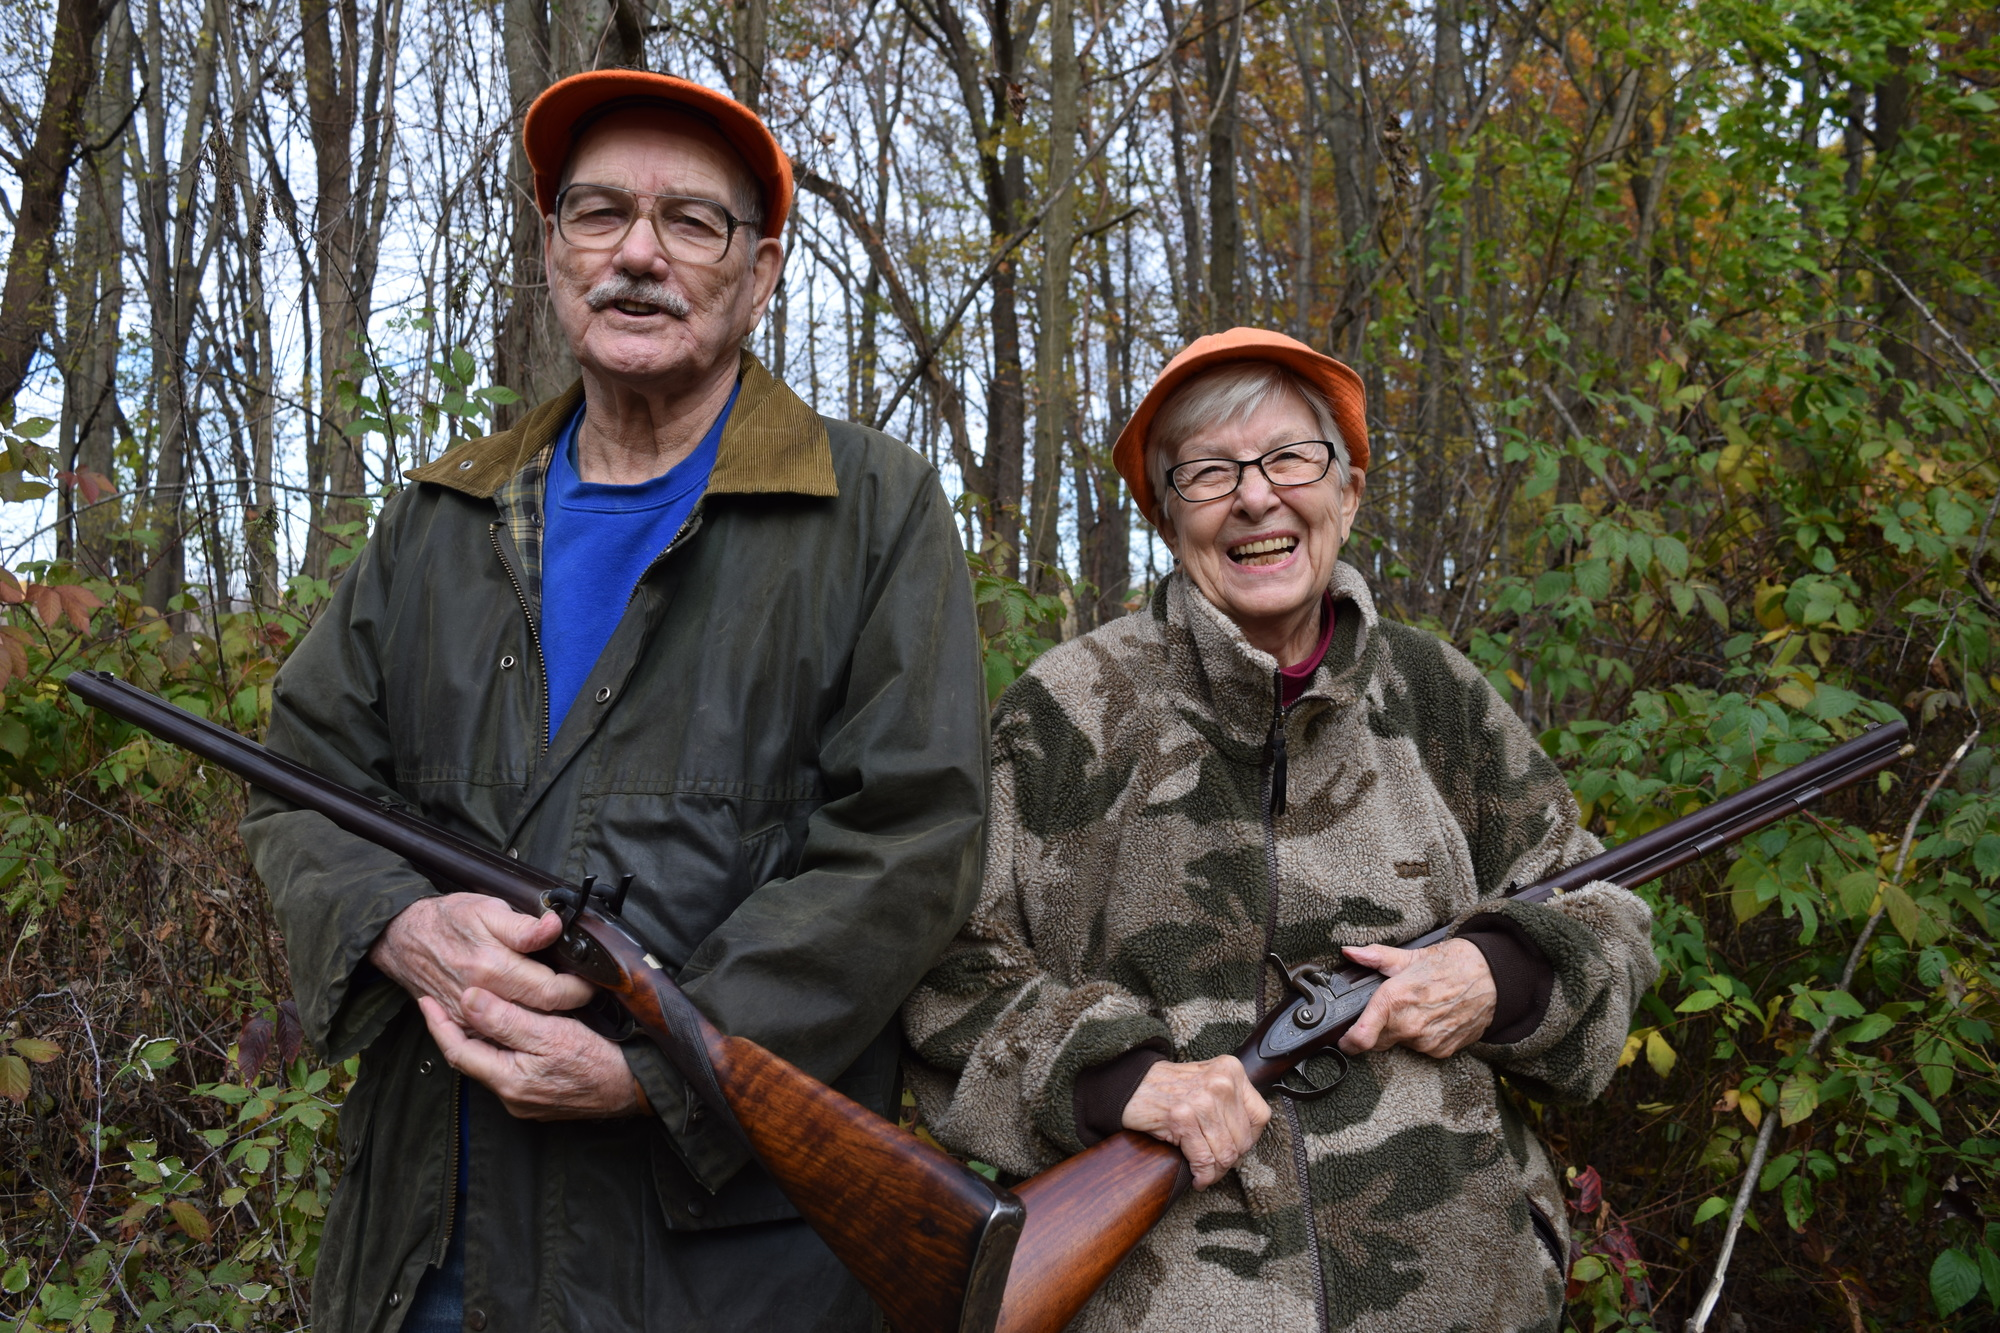 Joe Ehlinger, who lives near Addison, hunts with his wife, Marty, who is 83.